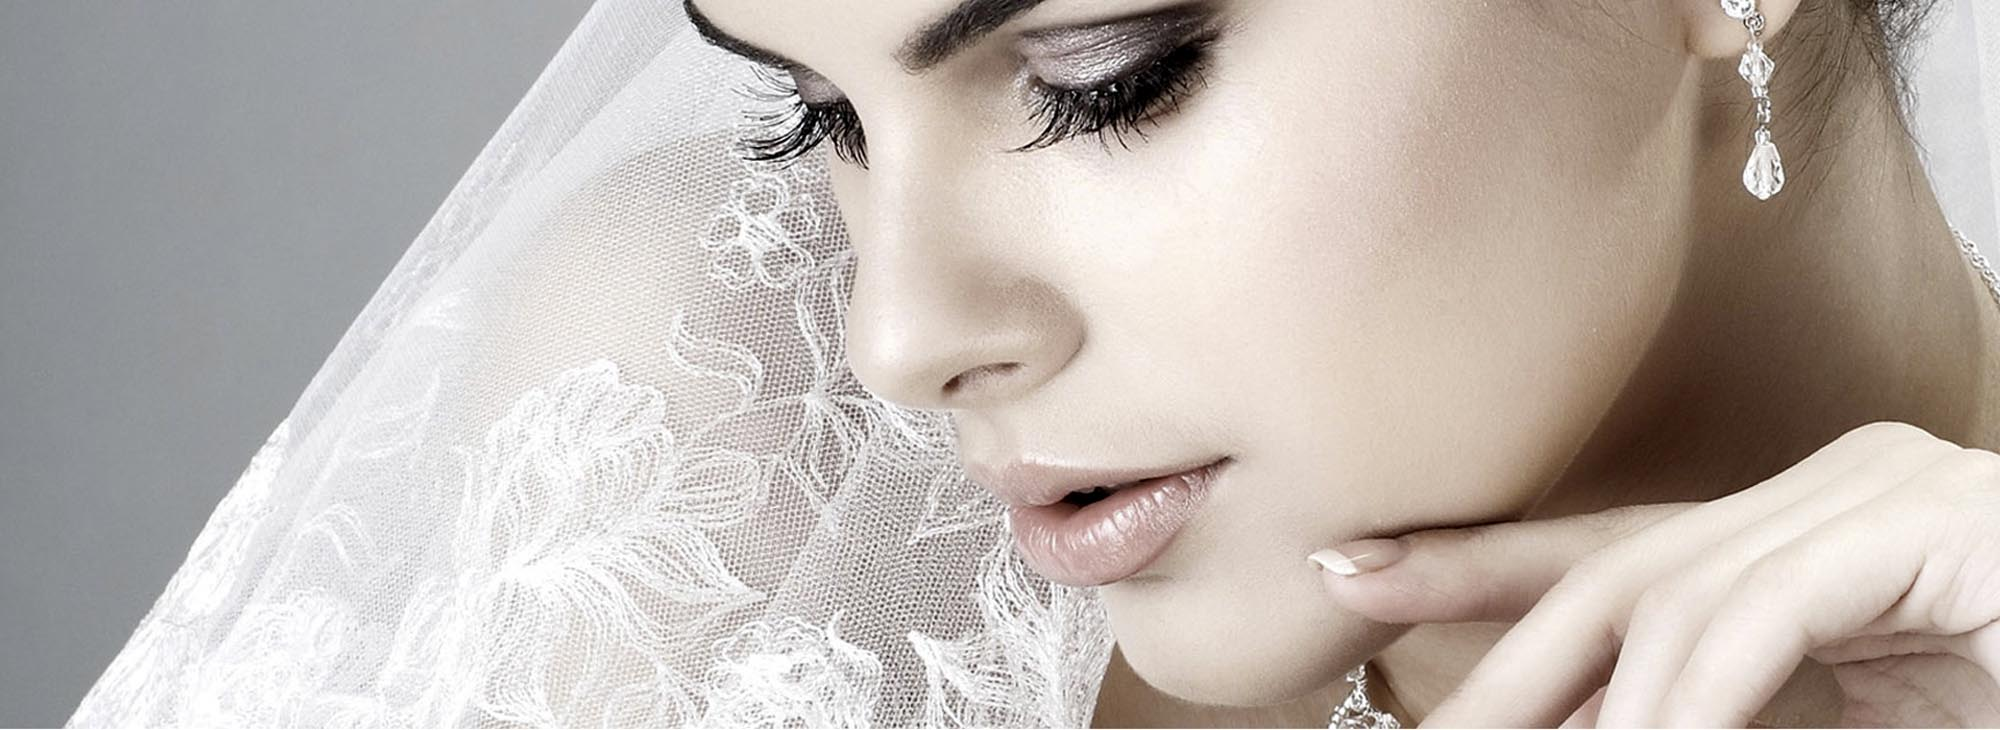 make up e acconciatura sposa vercelli